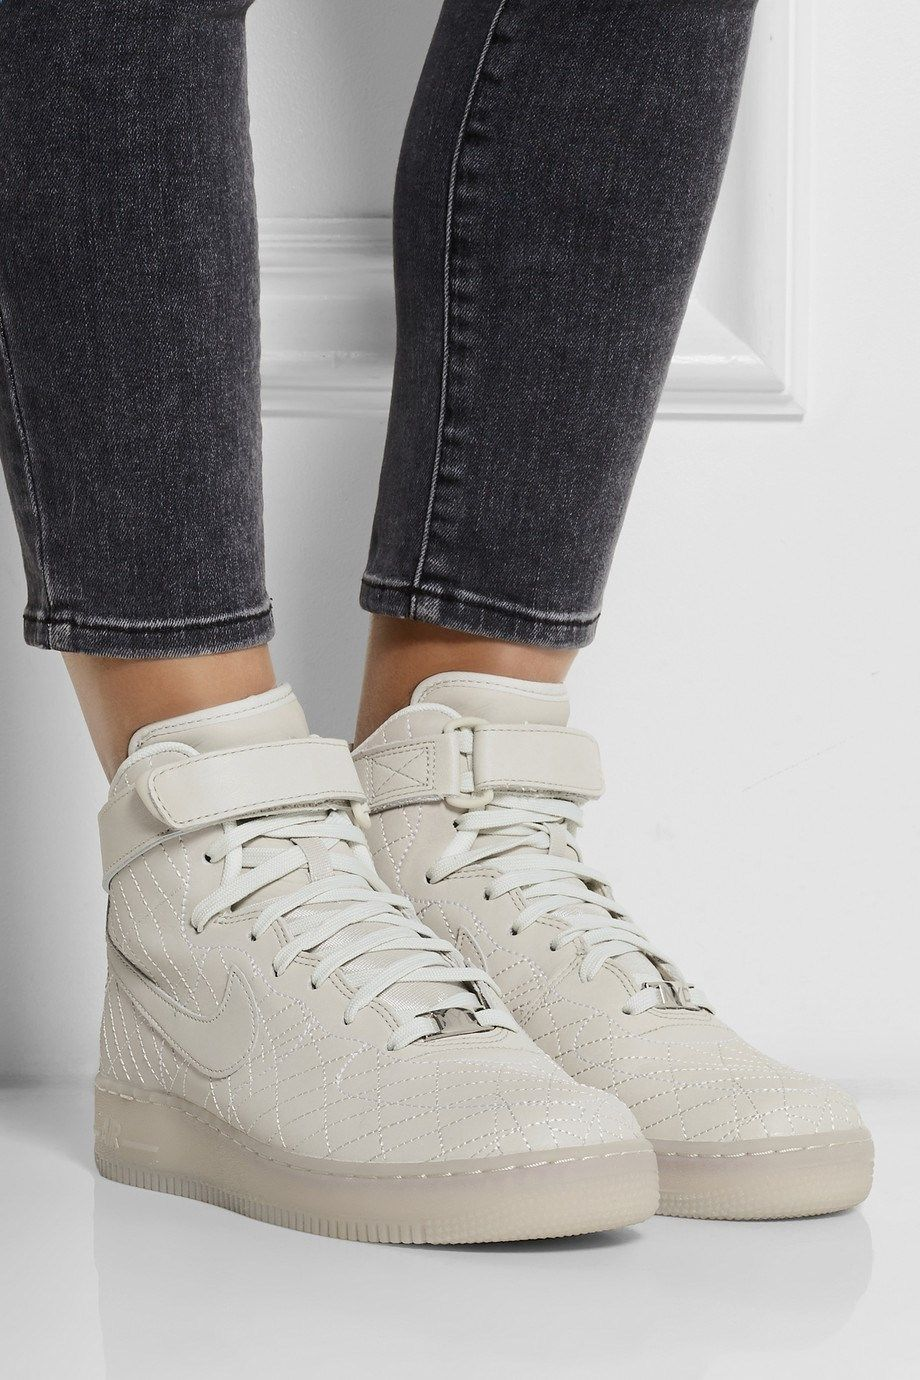 Nike Air Force 1 NYC High Top Sneakers aus Leder NET A PORTER